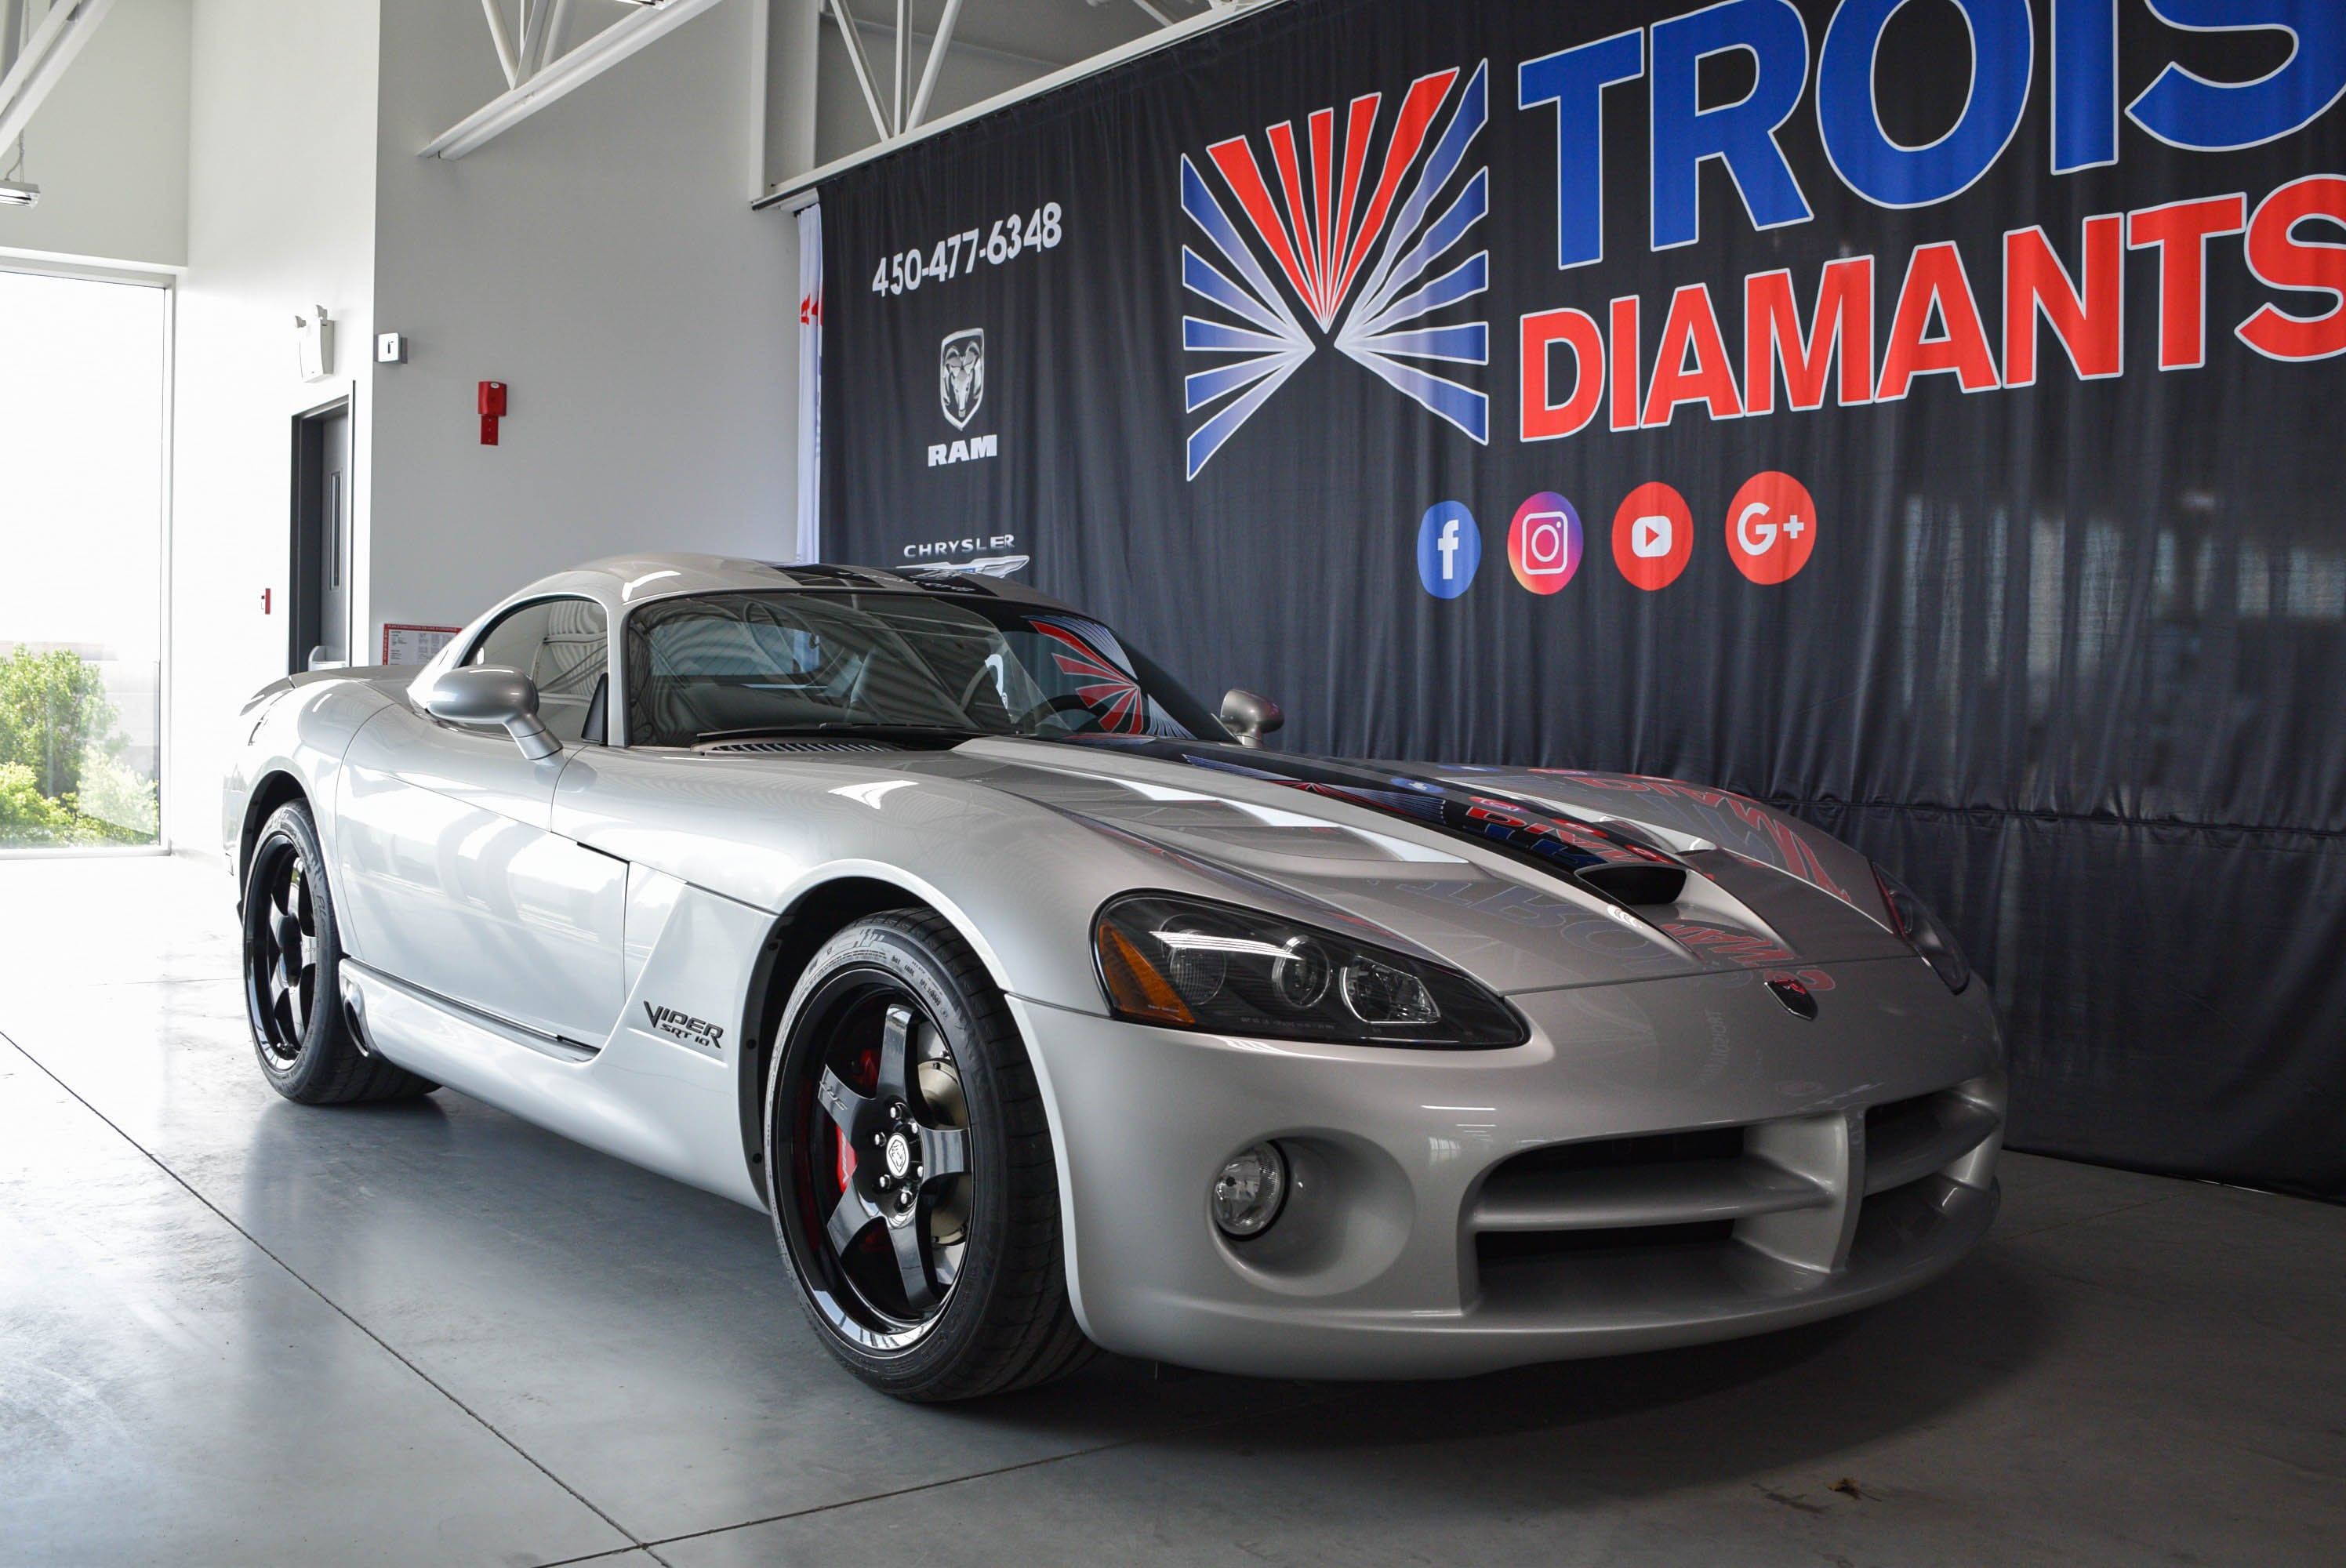 2009 Dodge Viper SRT10*EDITION SPECIAL 23/100*VOI10*NAV* Coupé